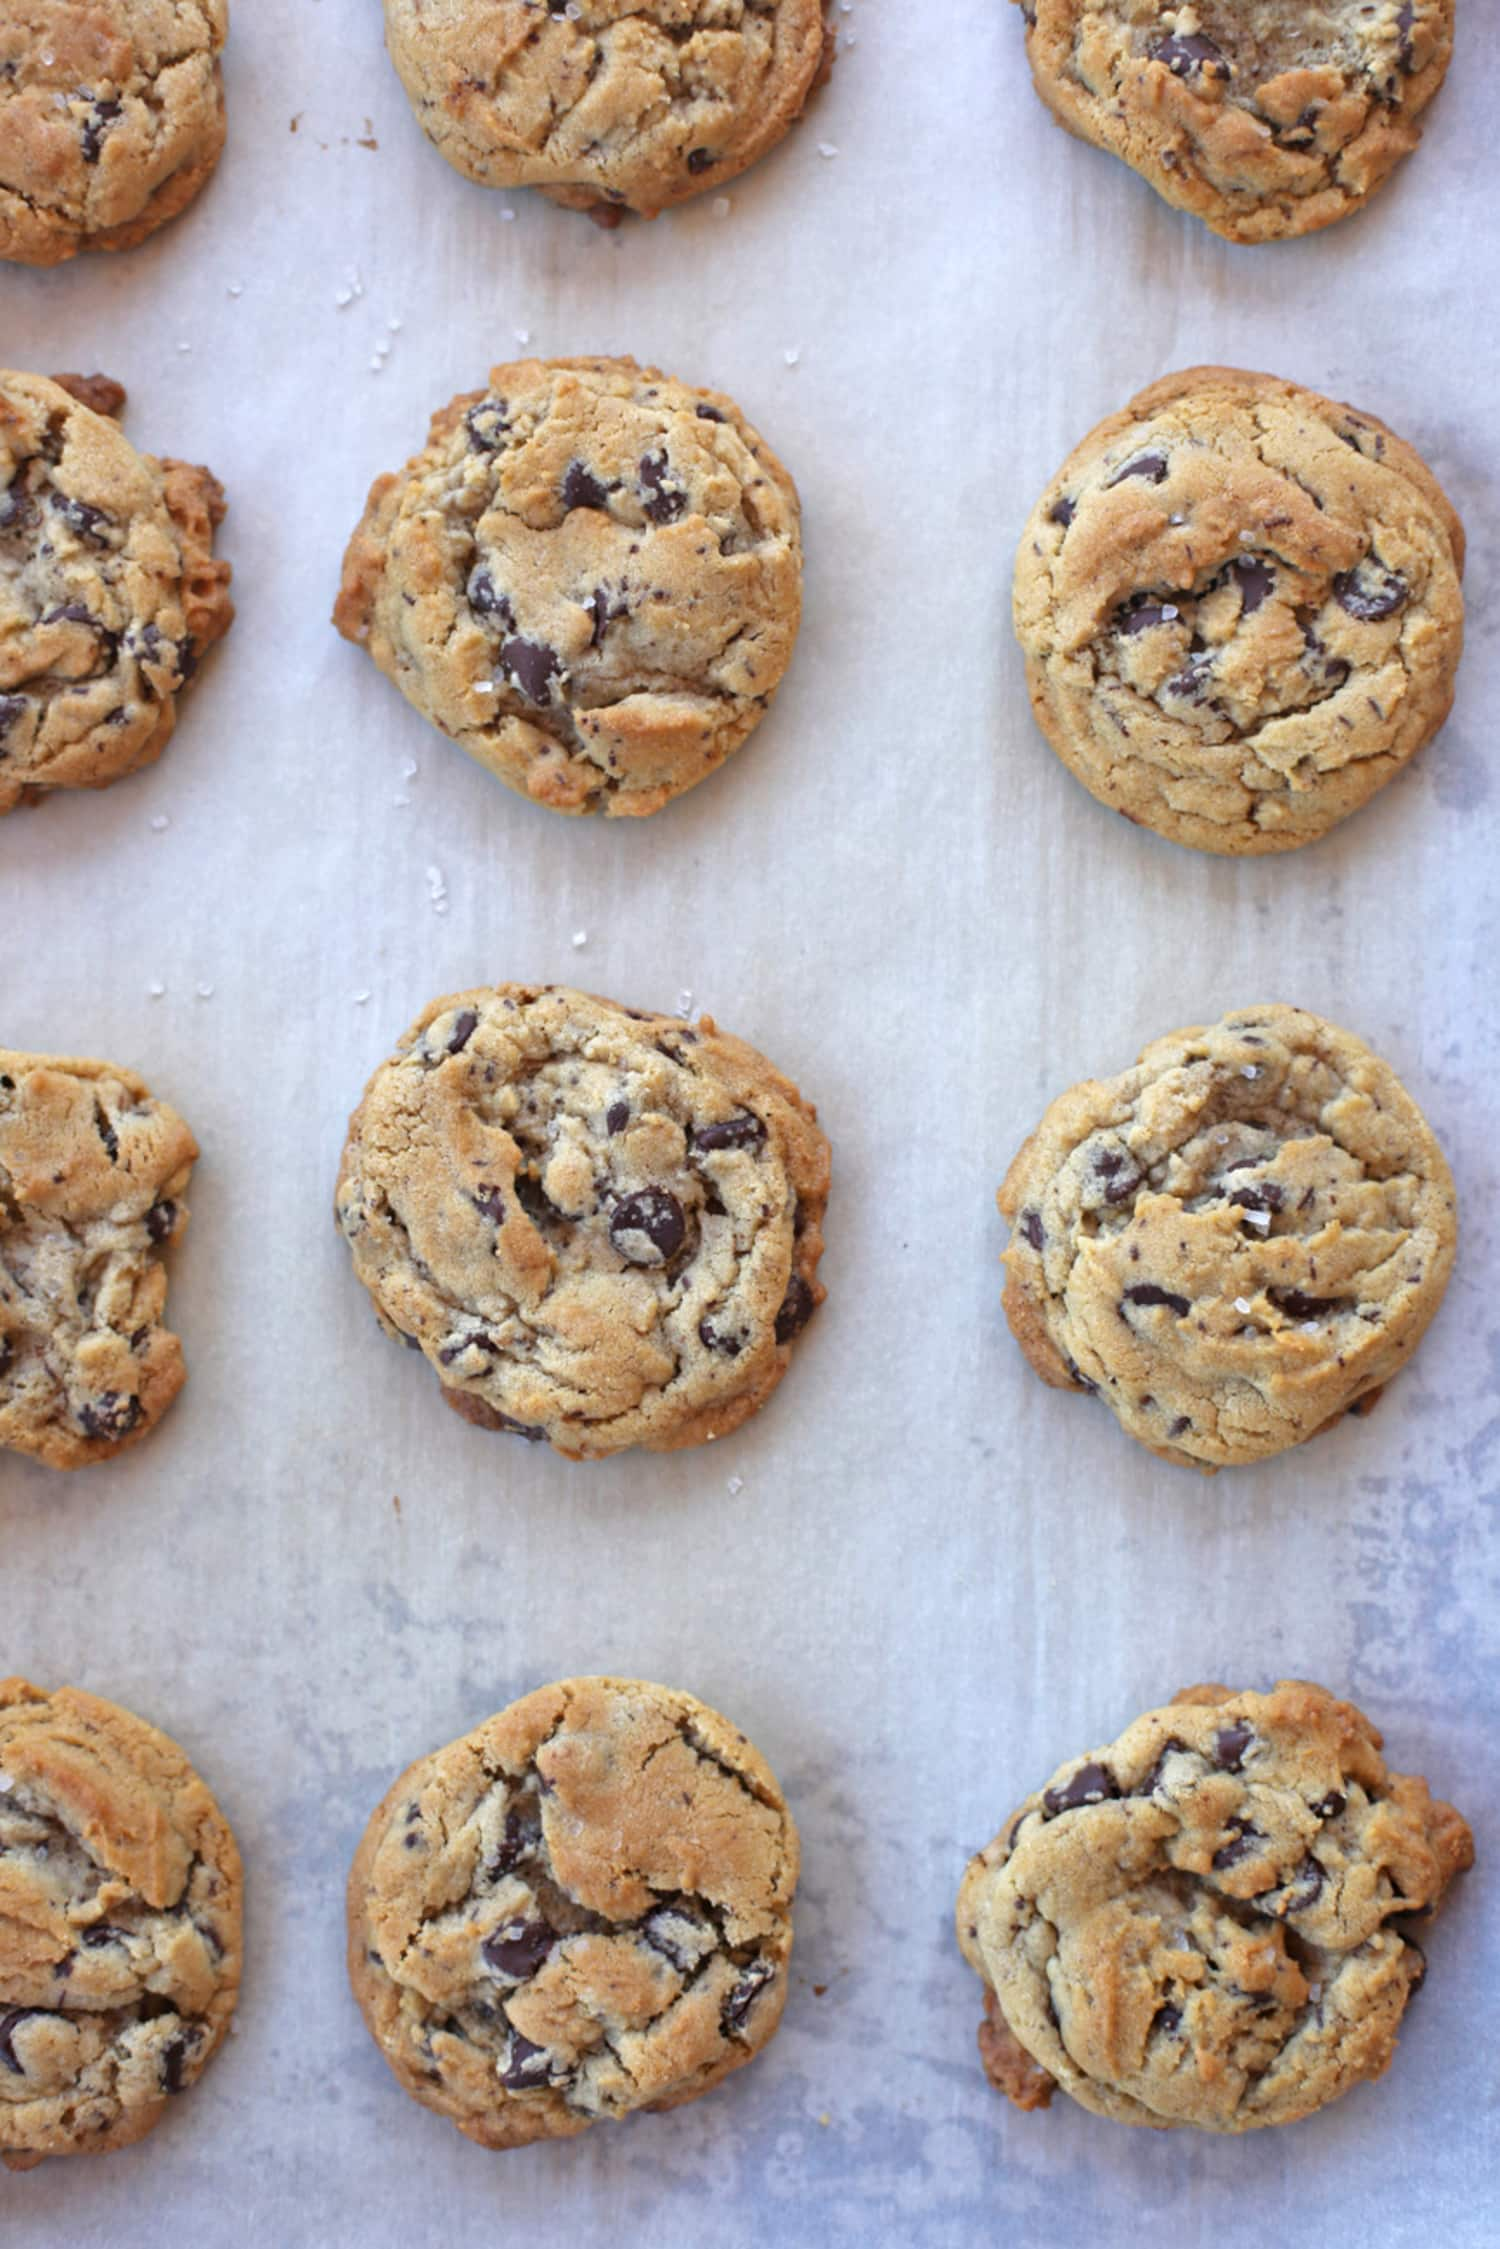 Why I'm Obsessed with This Chocolate Chip Cookie Recipe (No, Not That One)